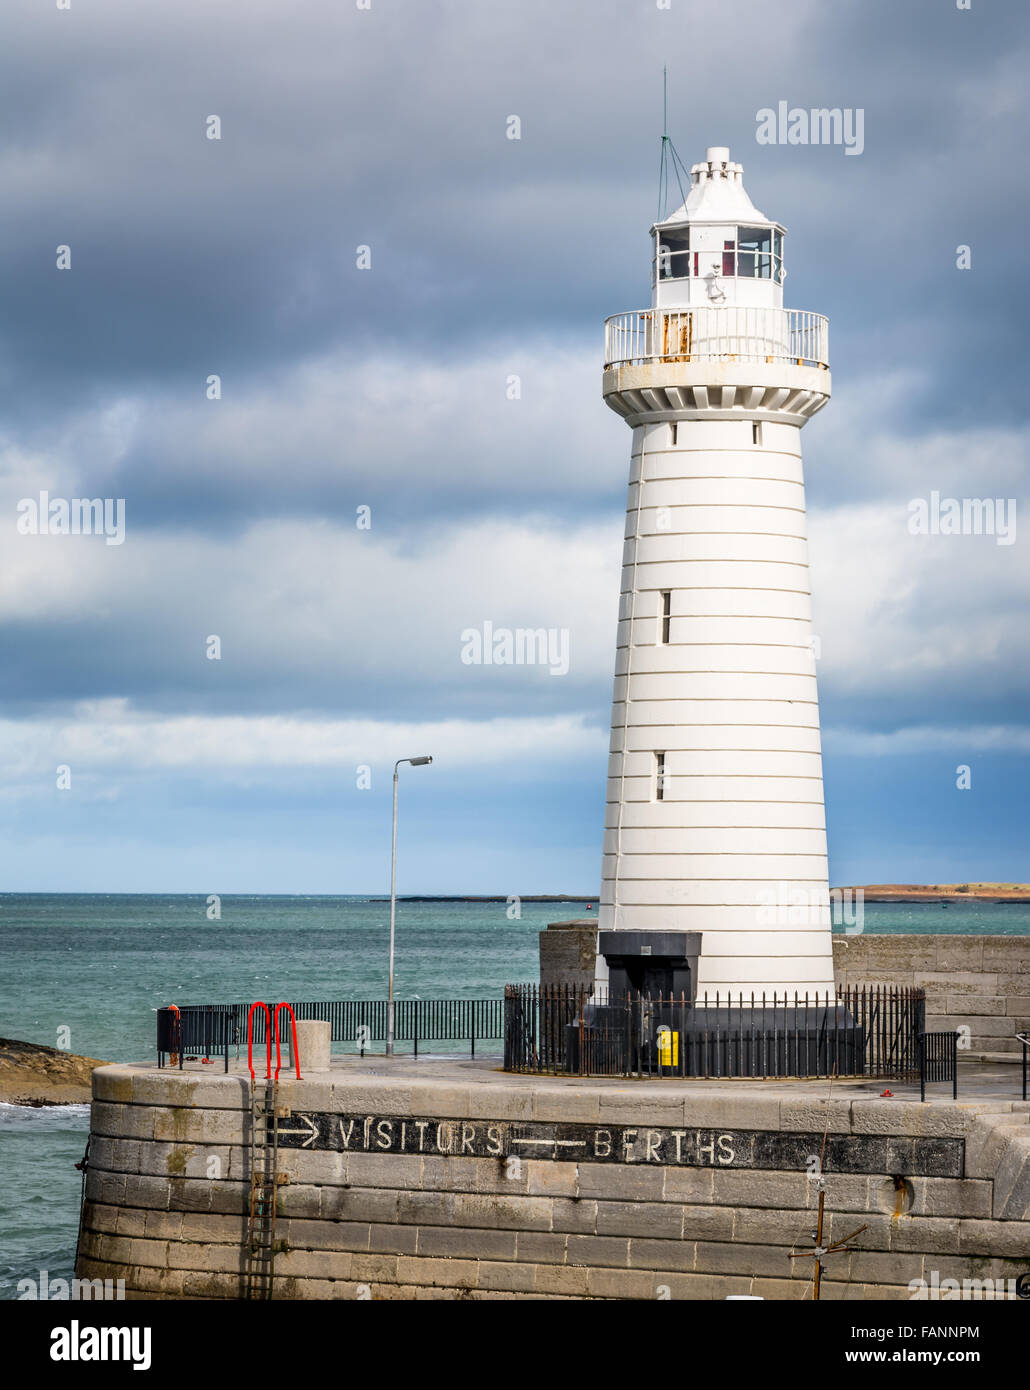 Donaghadee Lighthouse situated on the North East coastline of Ireland N.Ireland - Stock Image